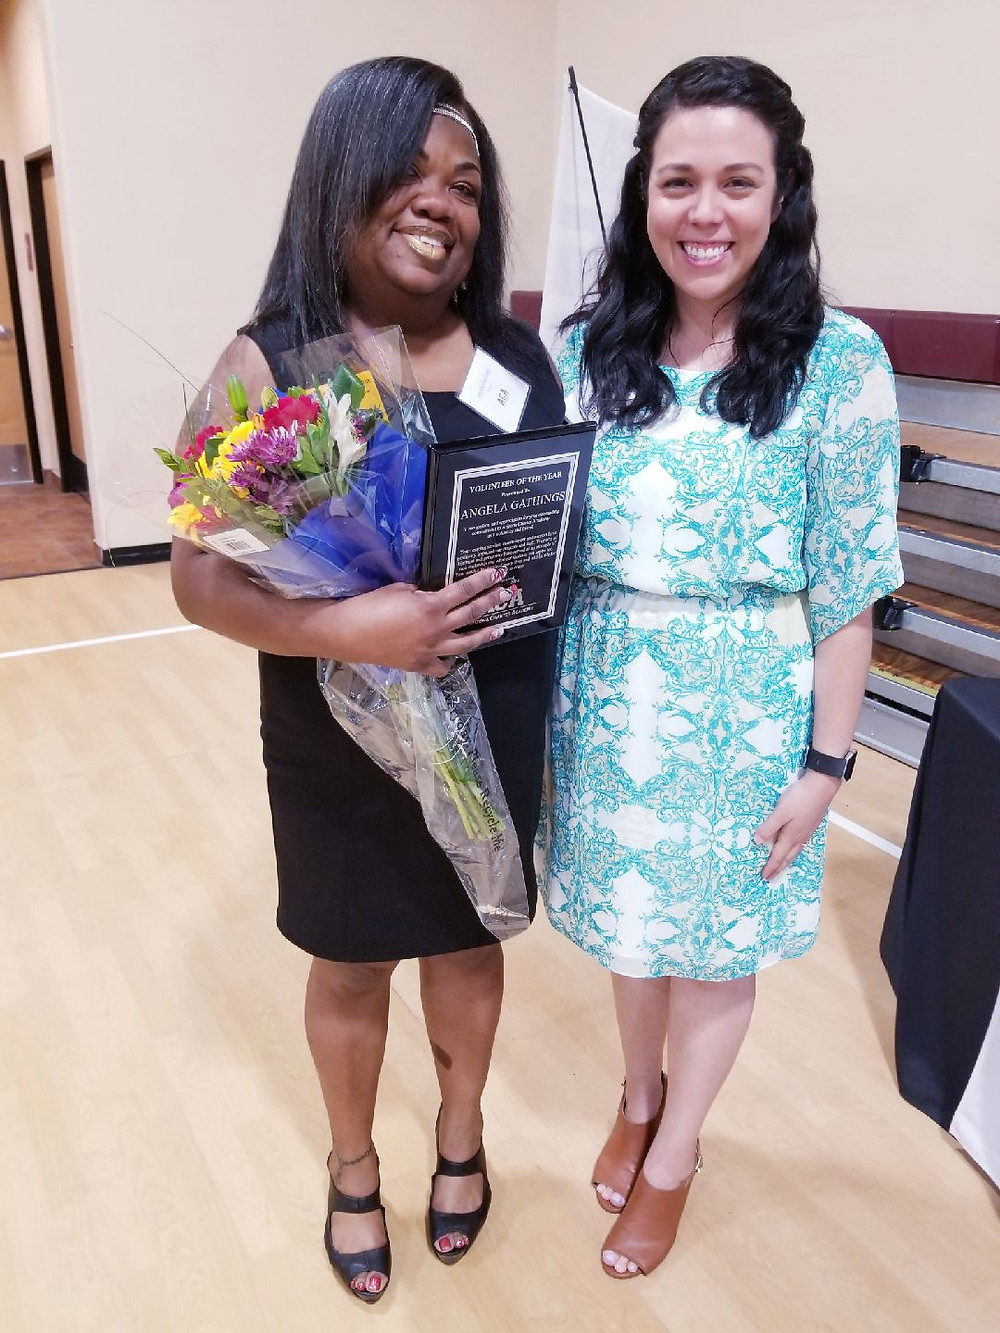 Volunteer of the Year with Mrs. Montenegro